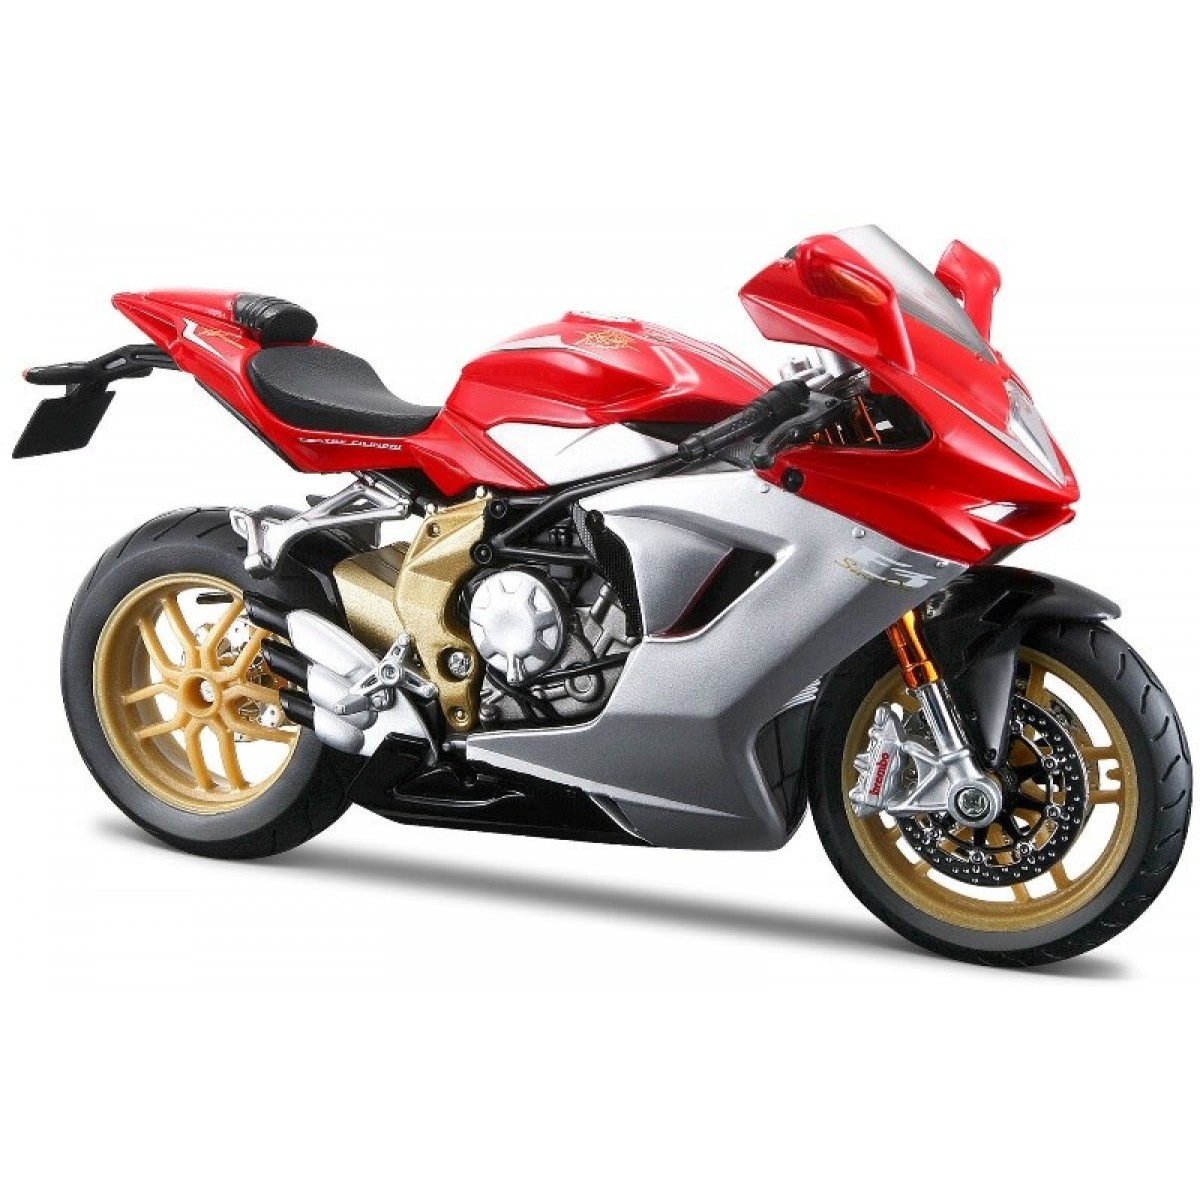 MV Agusta F3 Serie Oro 2012 images #114367